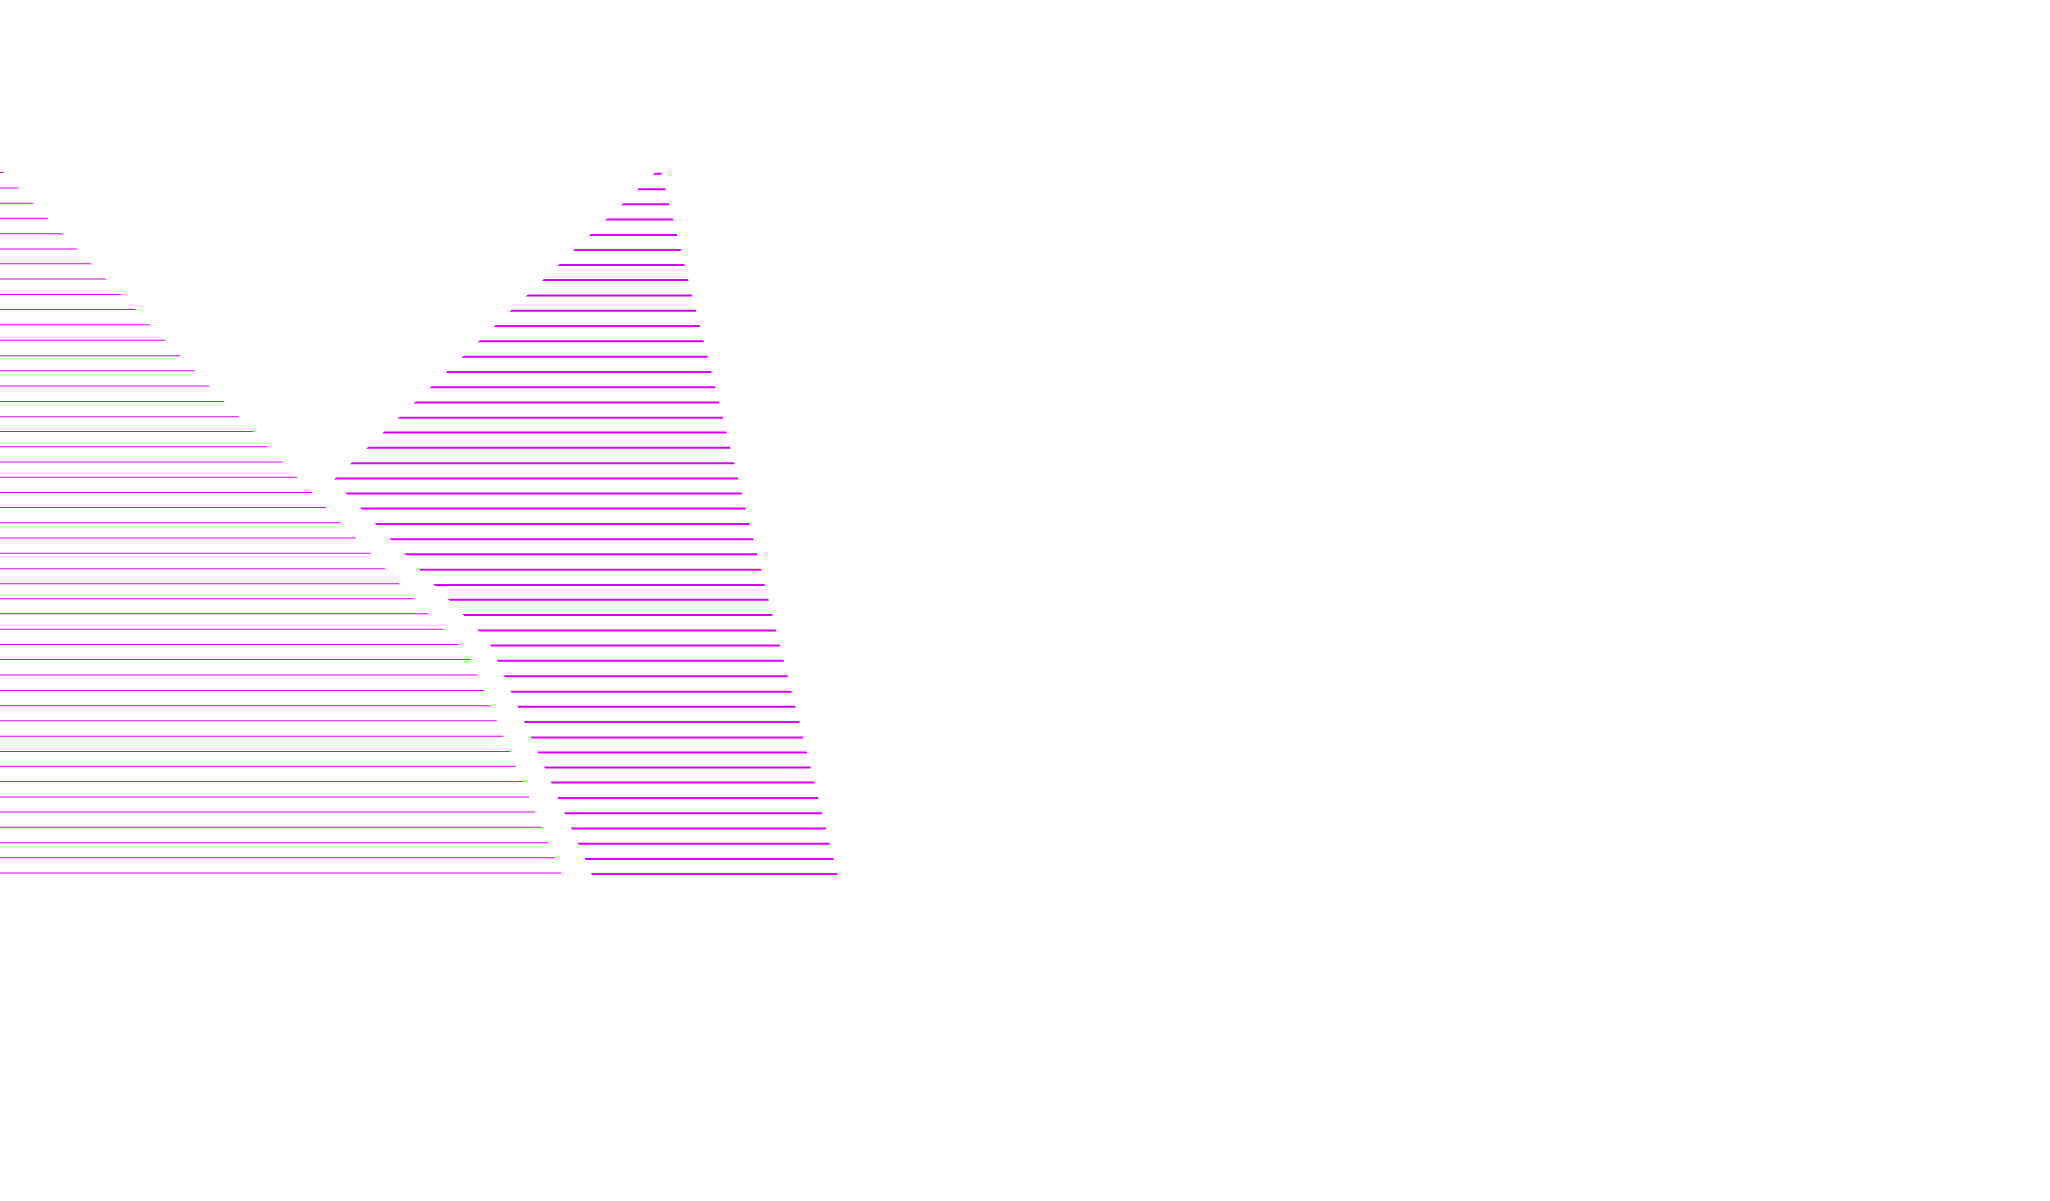 Montel logo in purple linear hatching